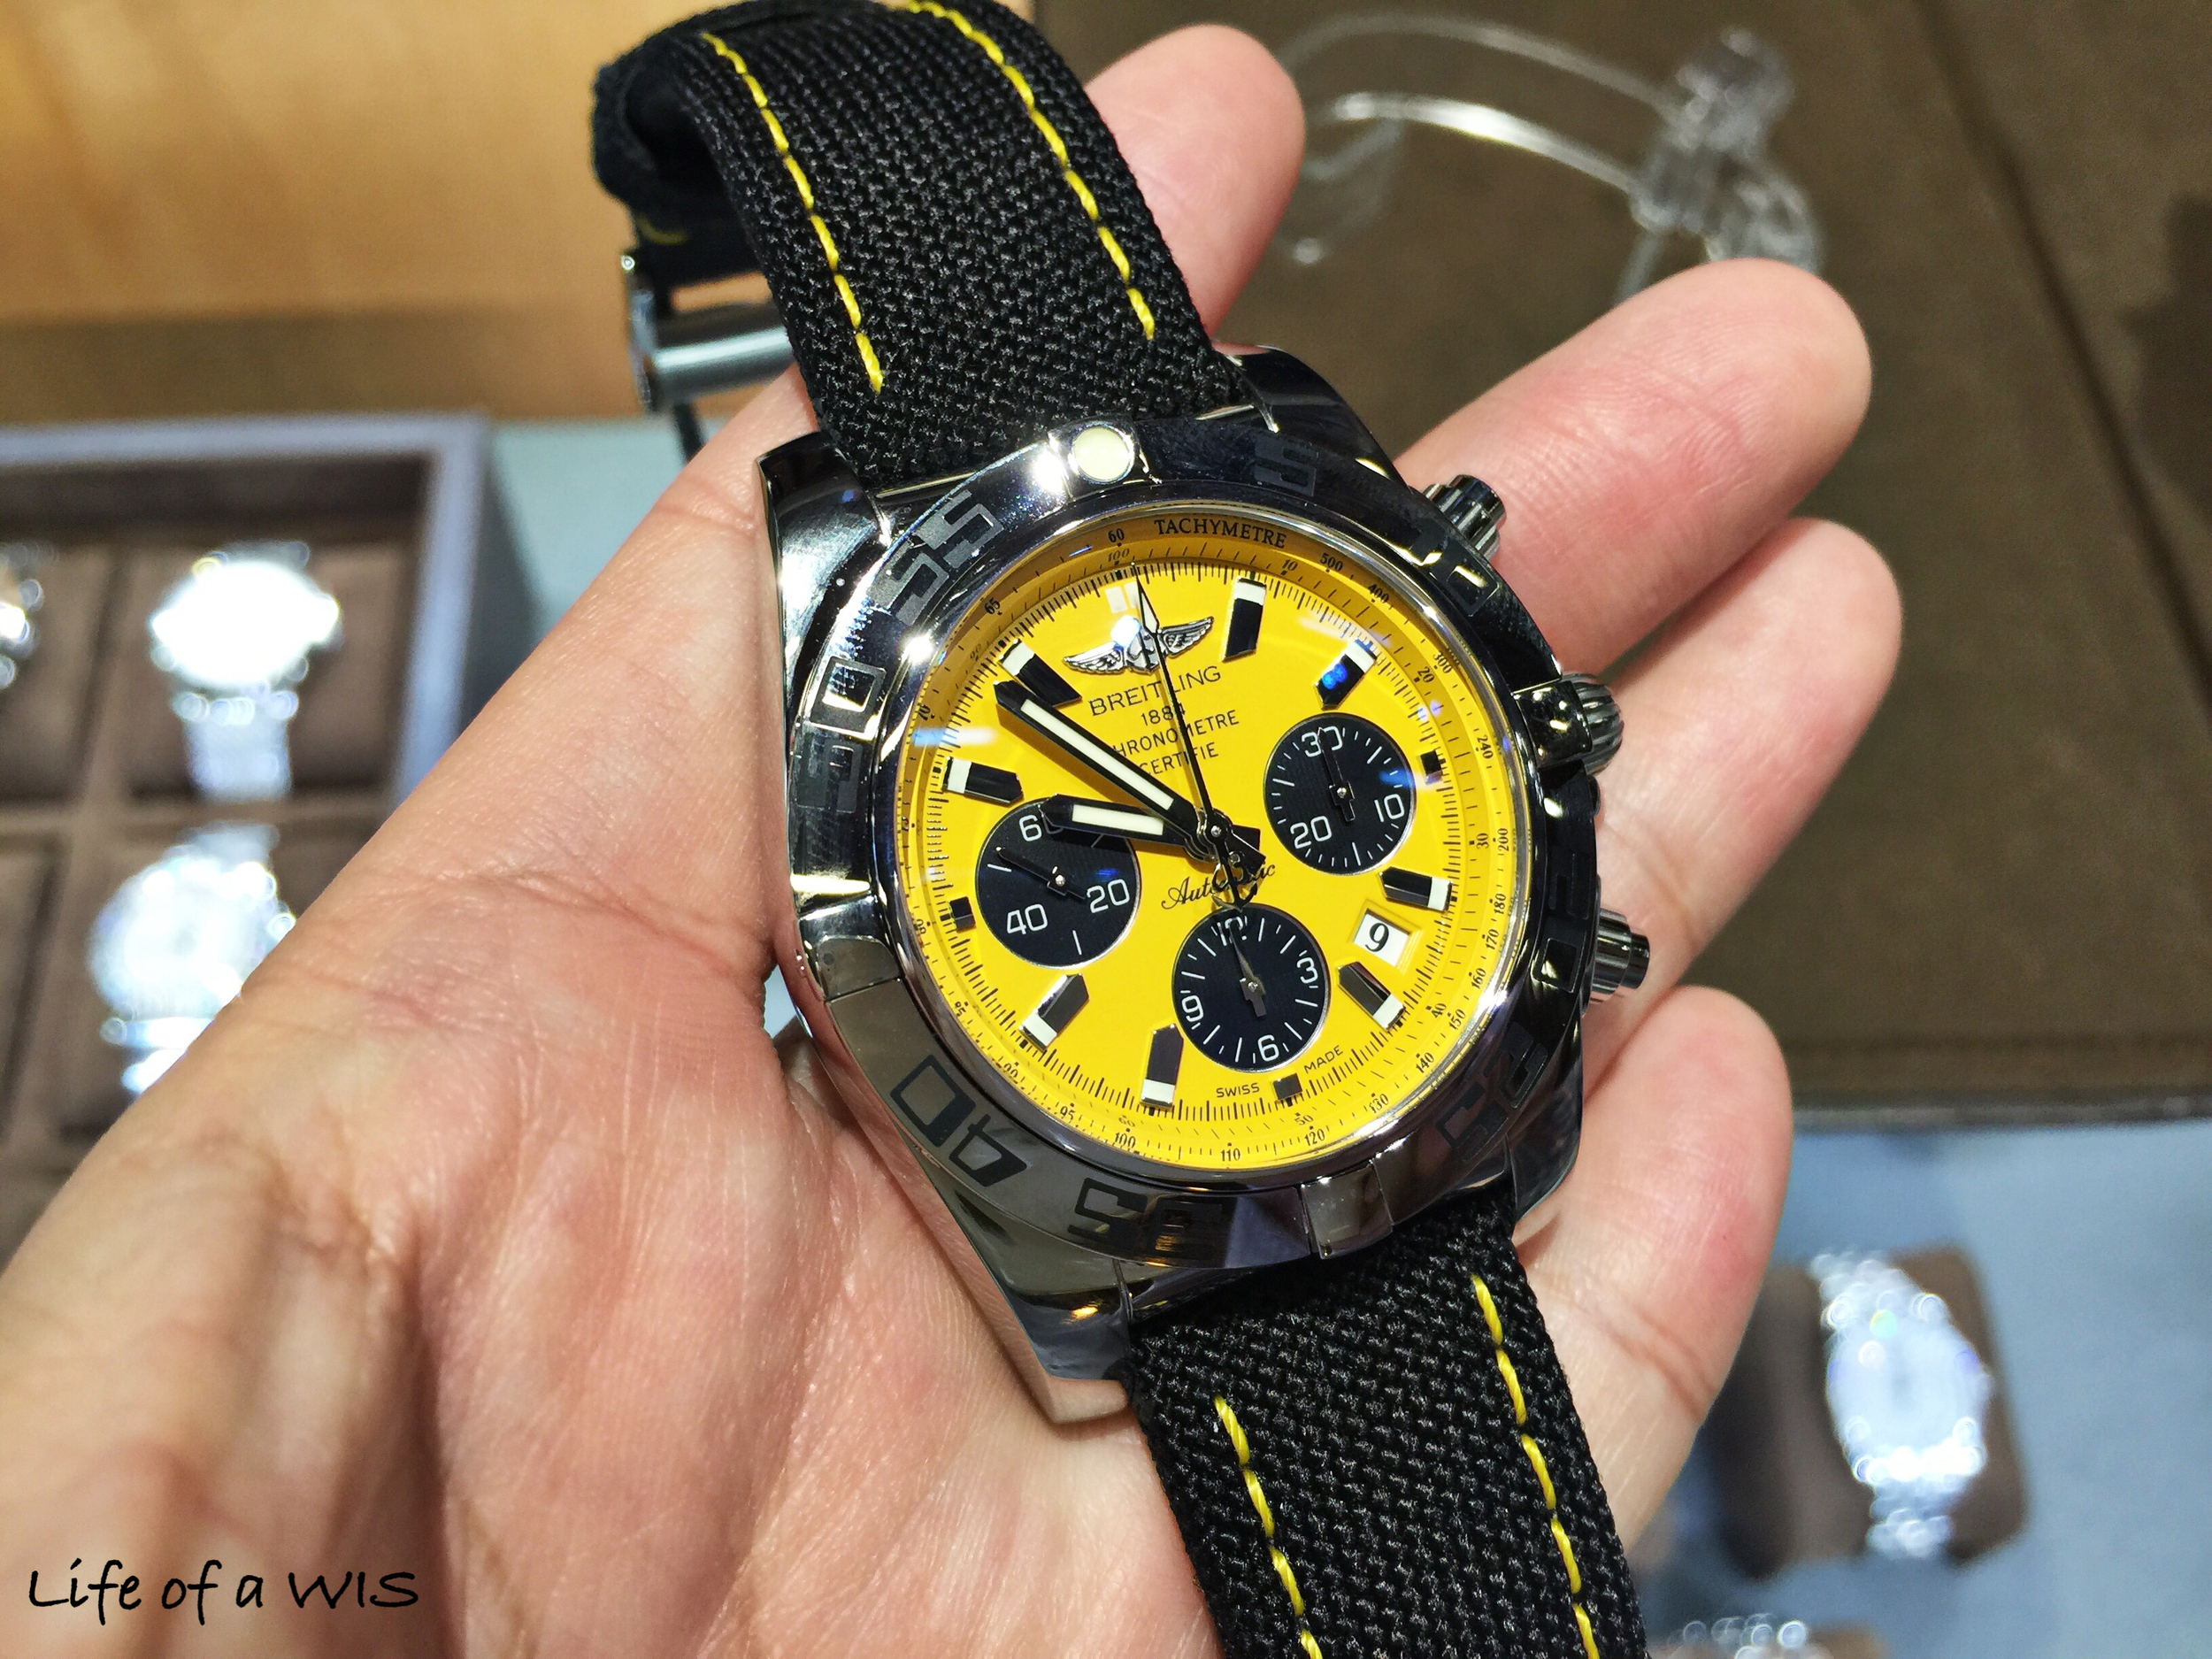 A colorful dial is always a treat. The yellow stitching on the strap is a nice touch.